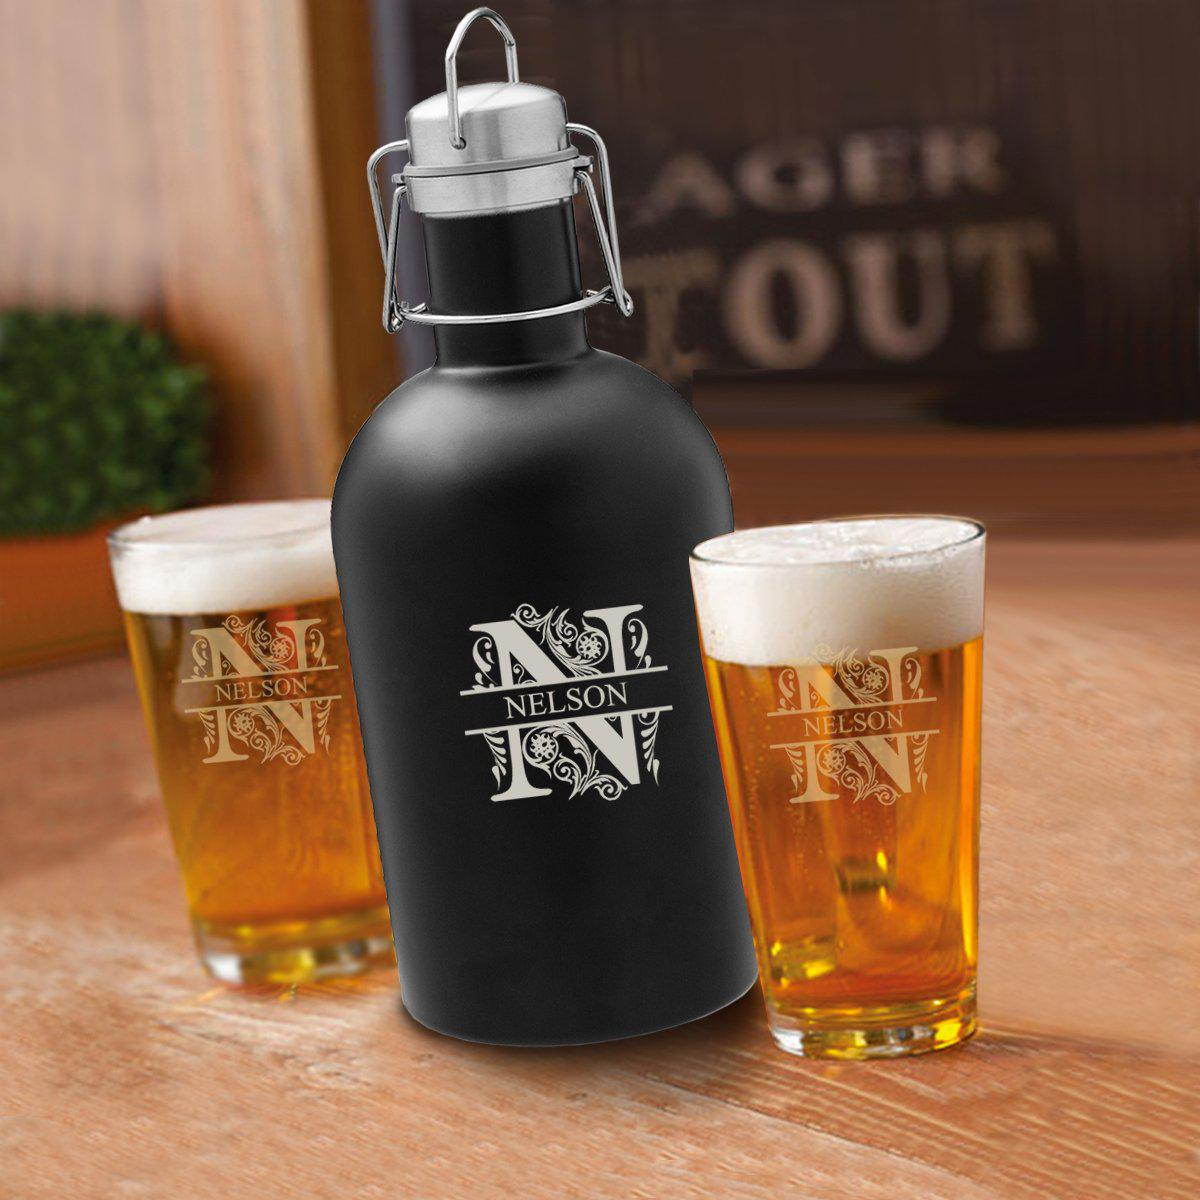 Personalized Black Growler Set with 2 Pint Glasses - 64oz.